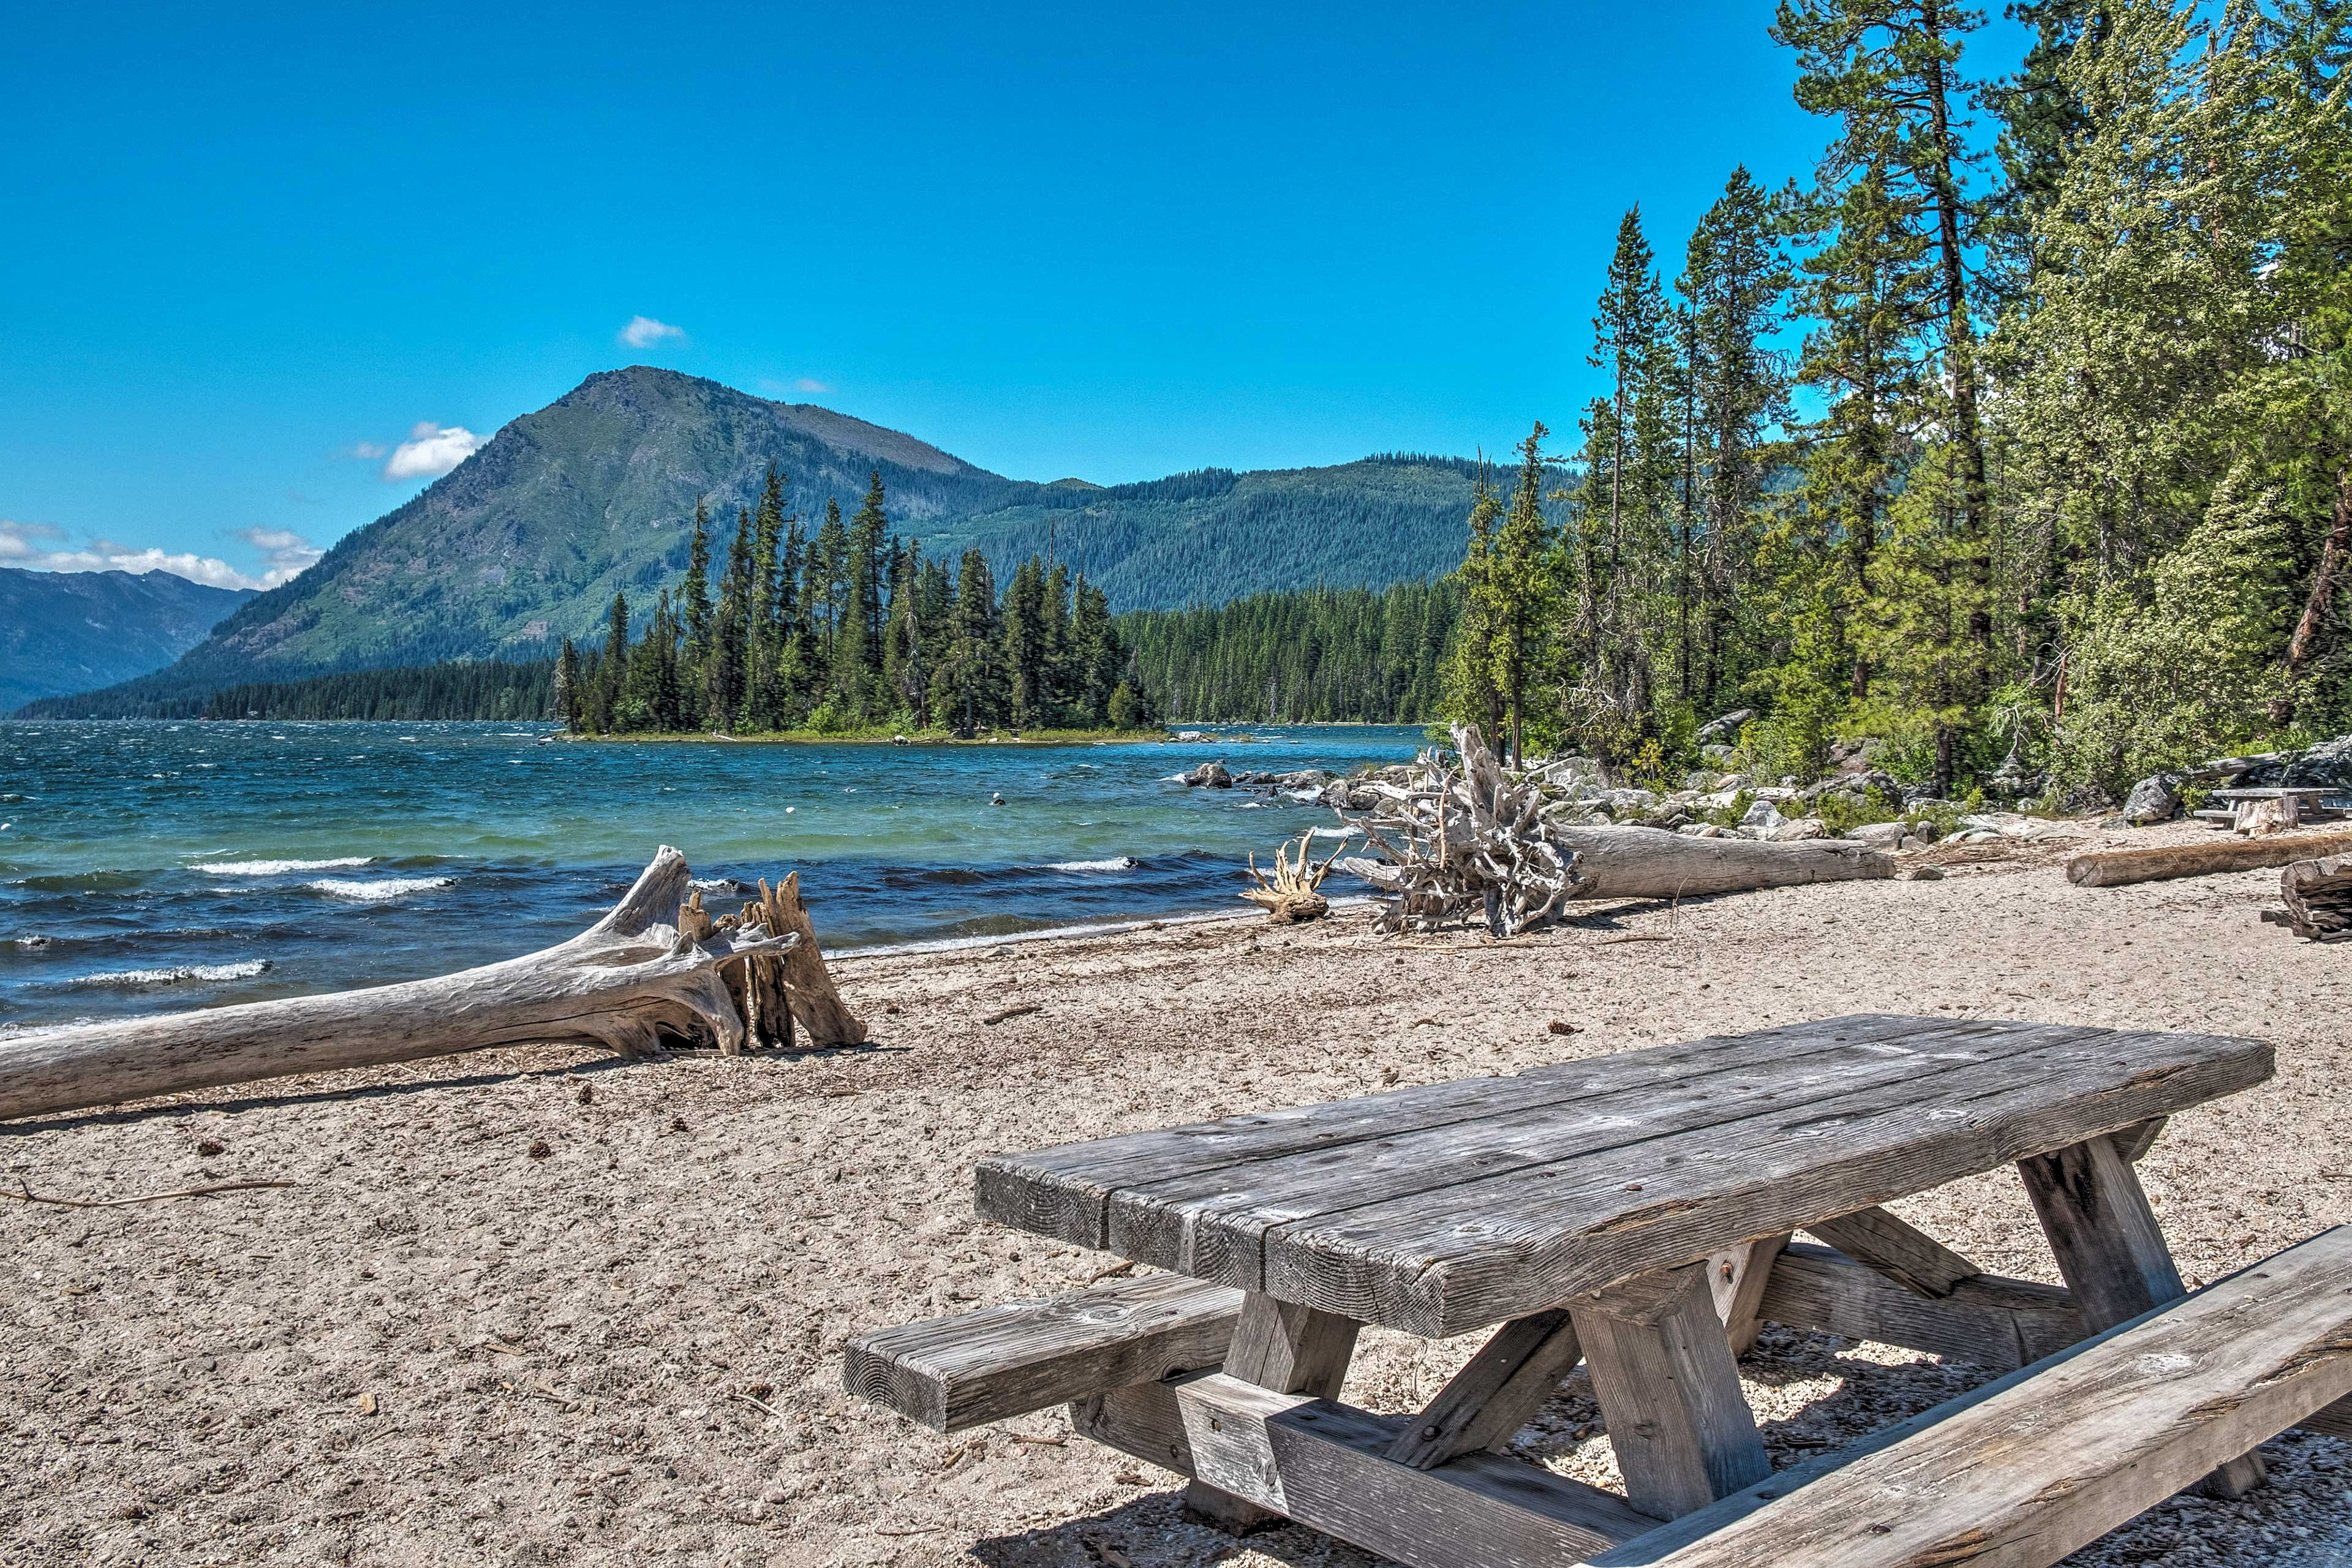 Drive no more than a couple of miles to explore the shores of Lake Wenatchee!